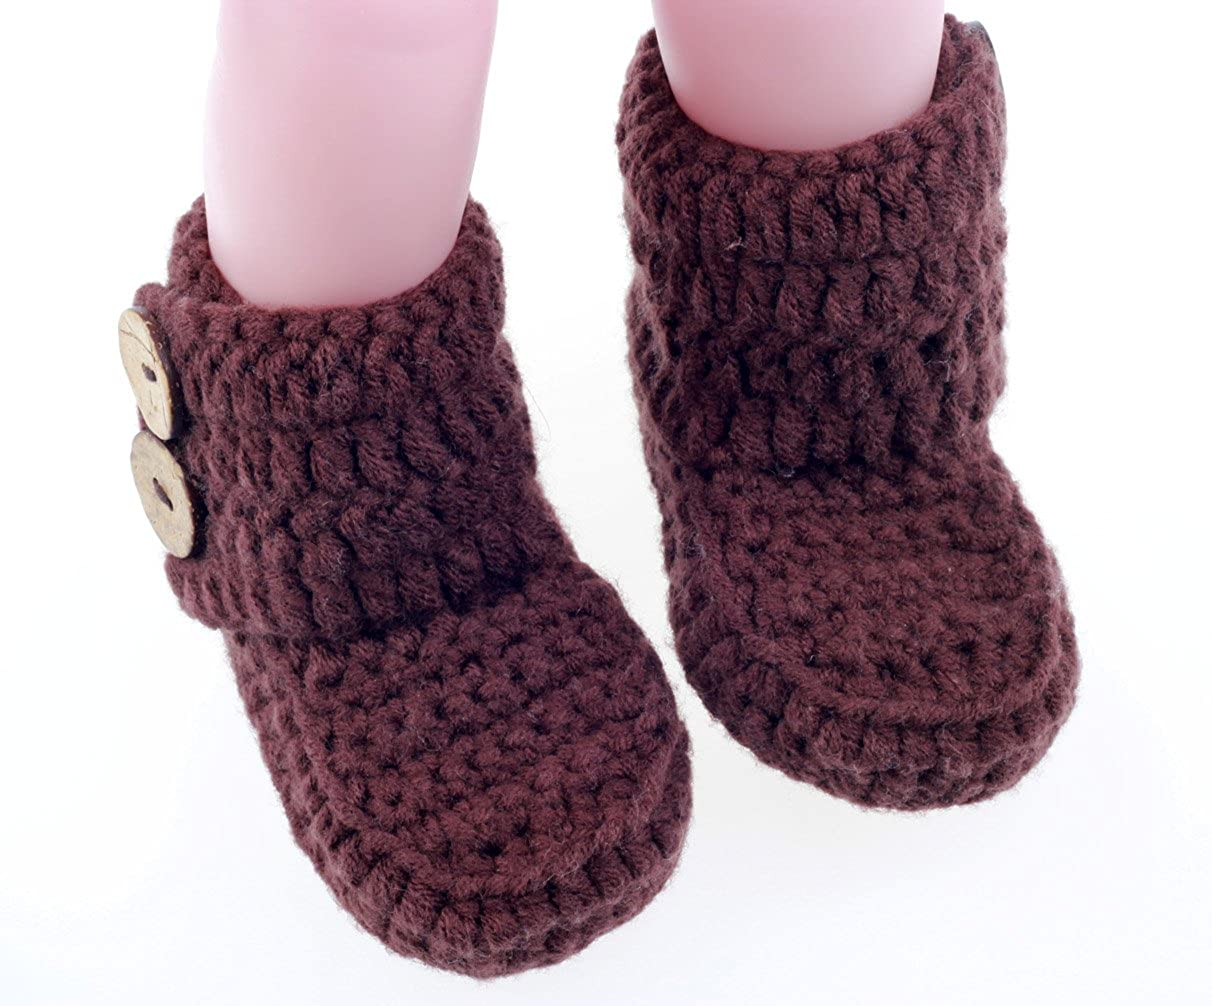 Amazon.com: bestknit Crochet Baby Booties recién nacido ...